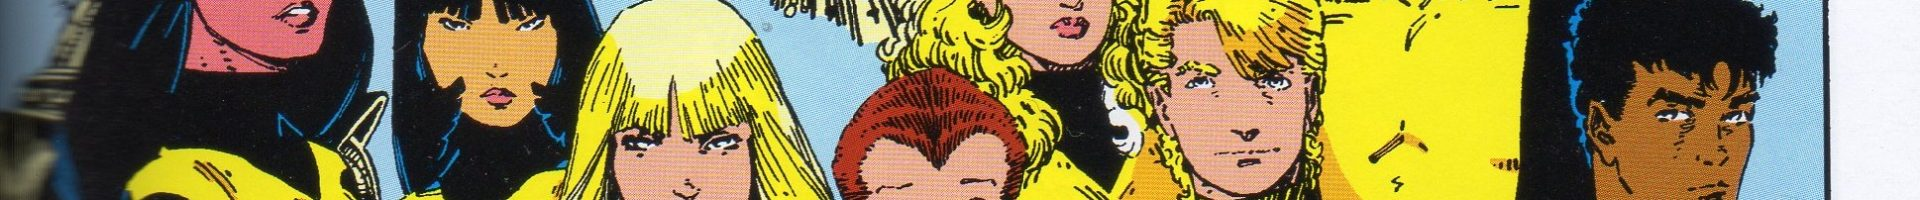 The New Mutants: A Slow Review